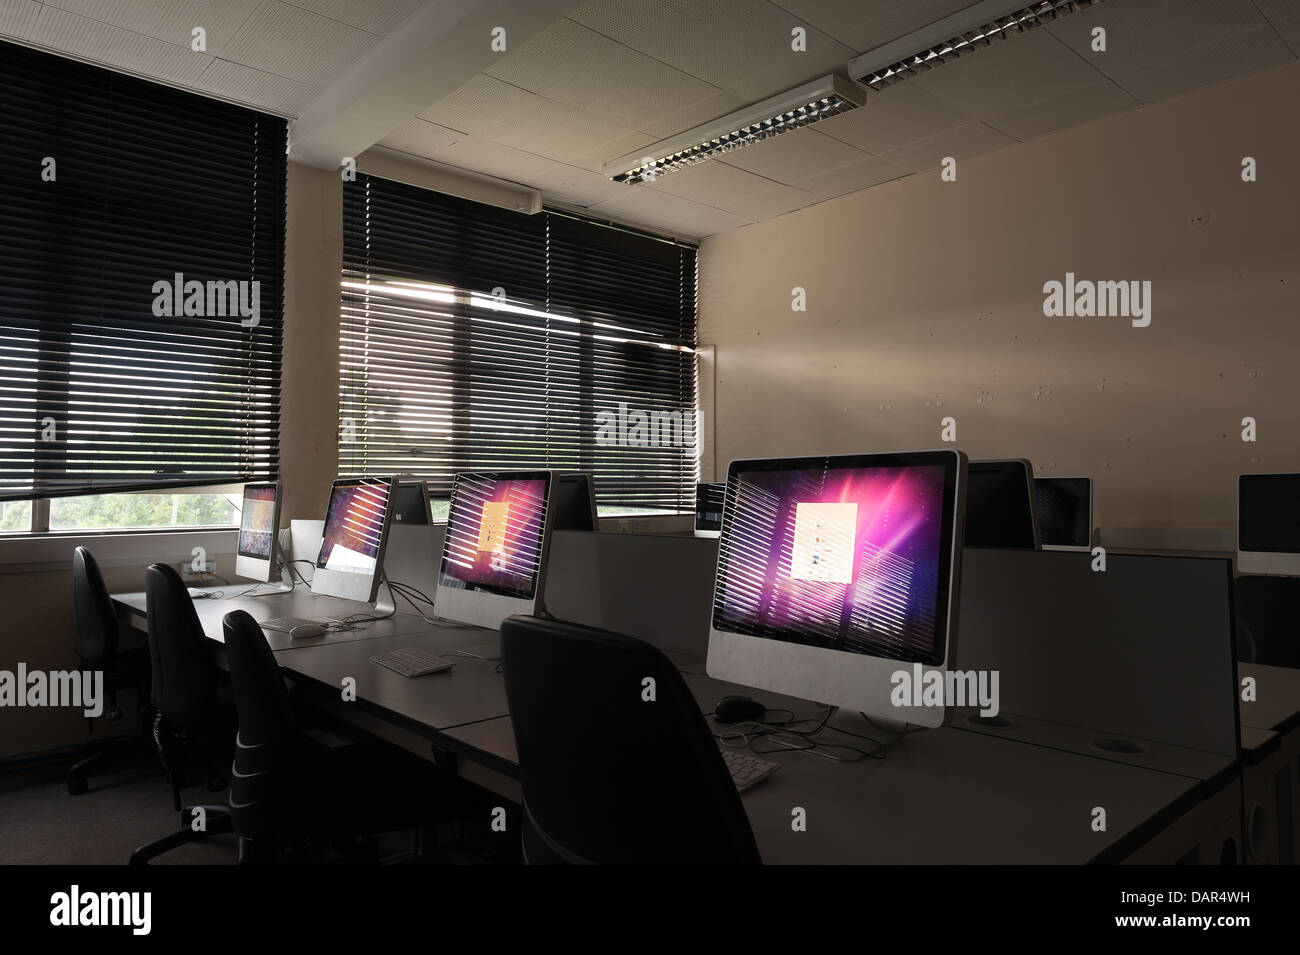 the end of school or college as we know it rows of computers in a darkened classroom previously much used now waiting - Stock Image